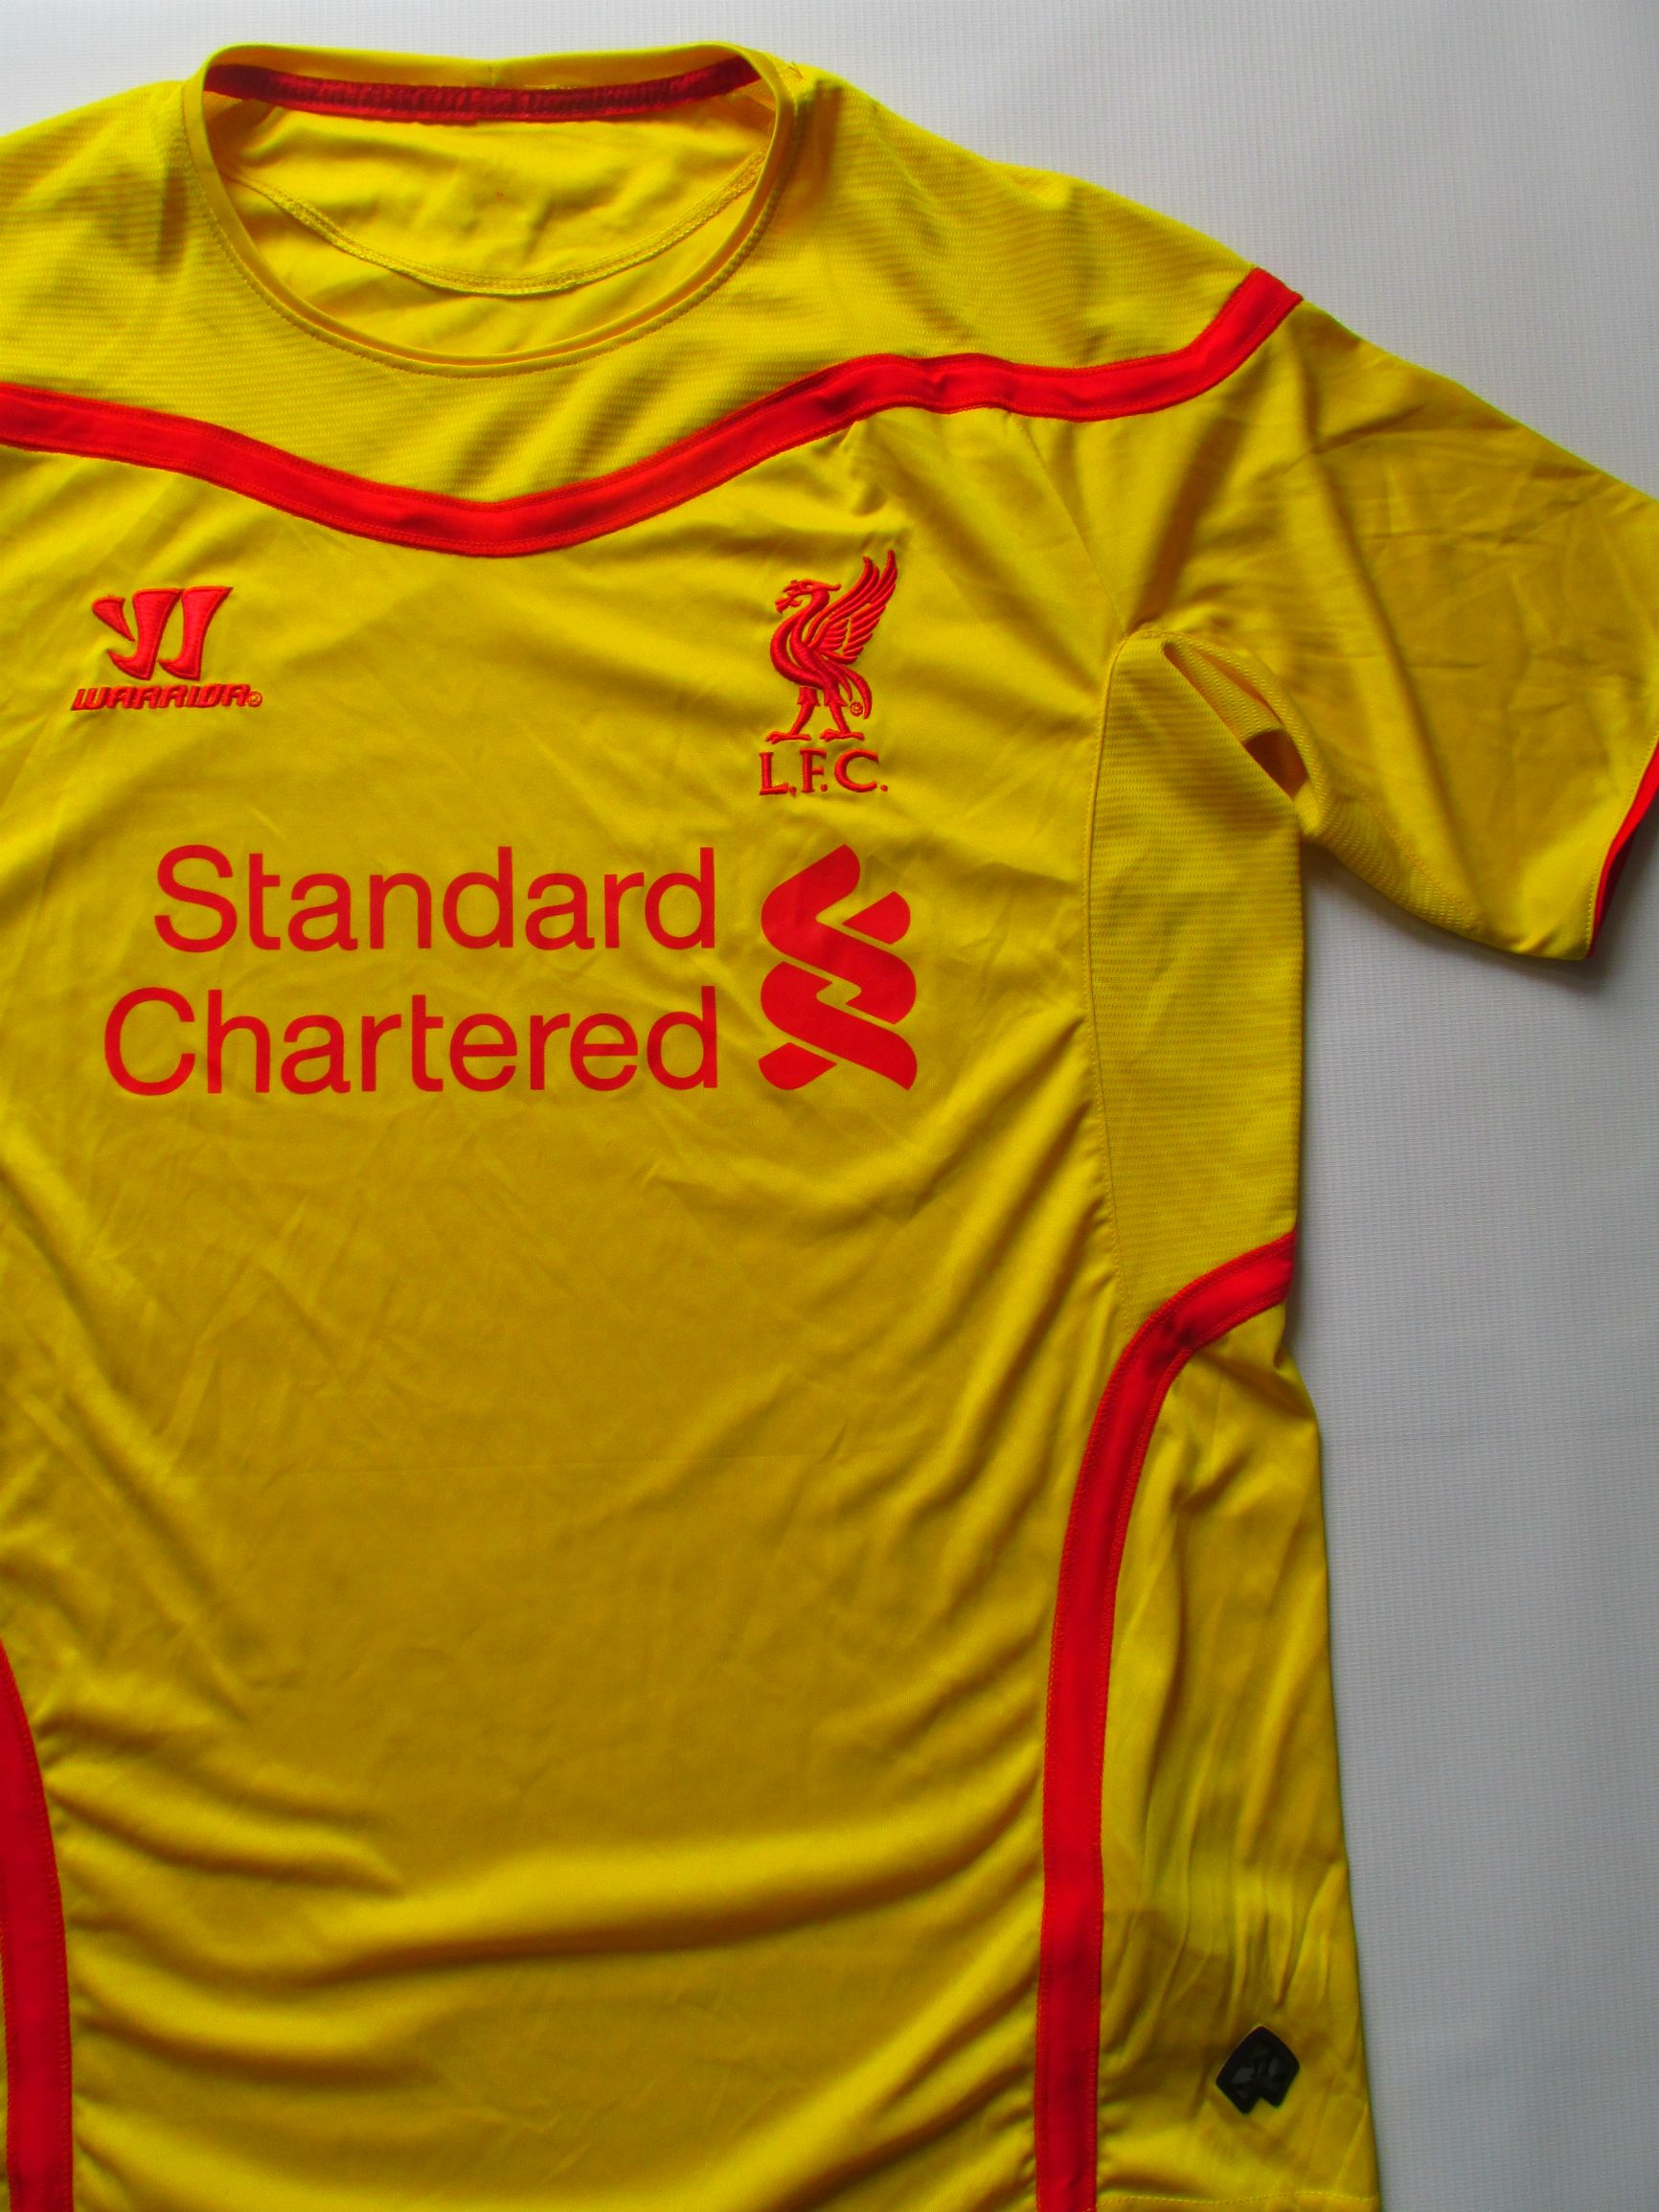 046dd8dedc8 Details about LIVERPOOL 2014 2015 AWAY FOOTBALL SHIRT SOCCER JERSEY  CAMISETA WARRIOR LFC (M)